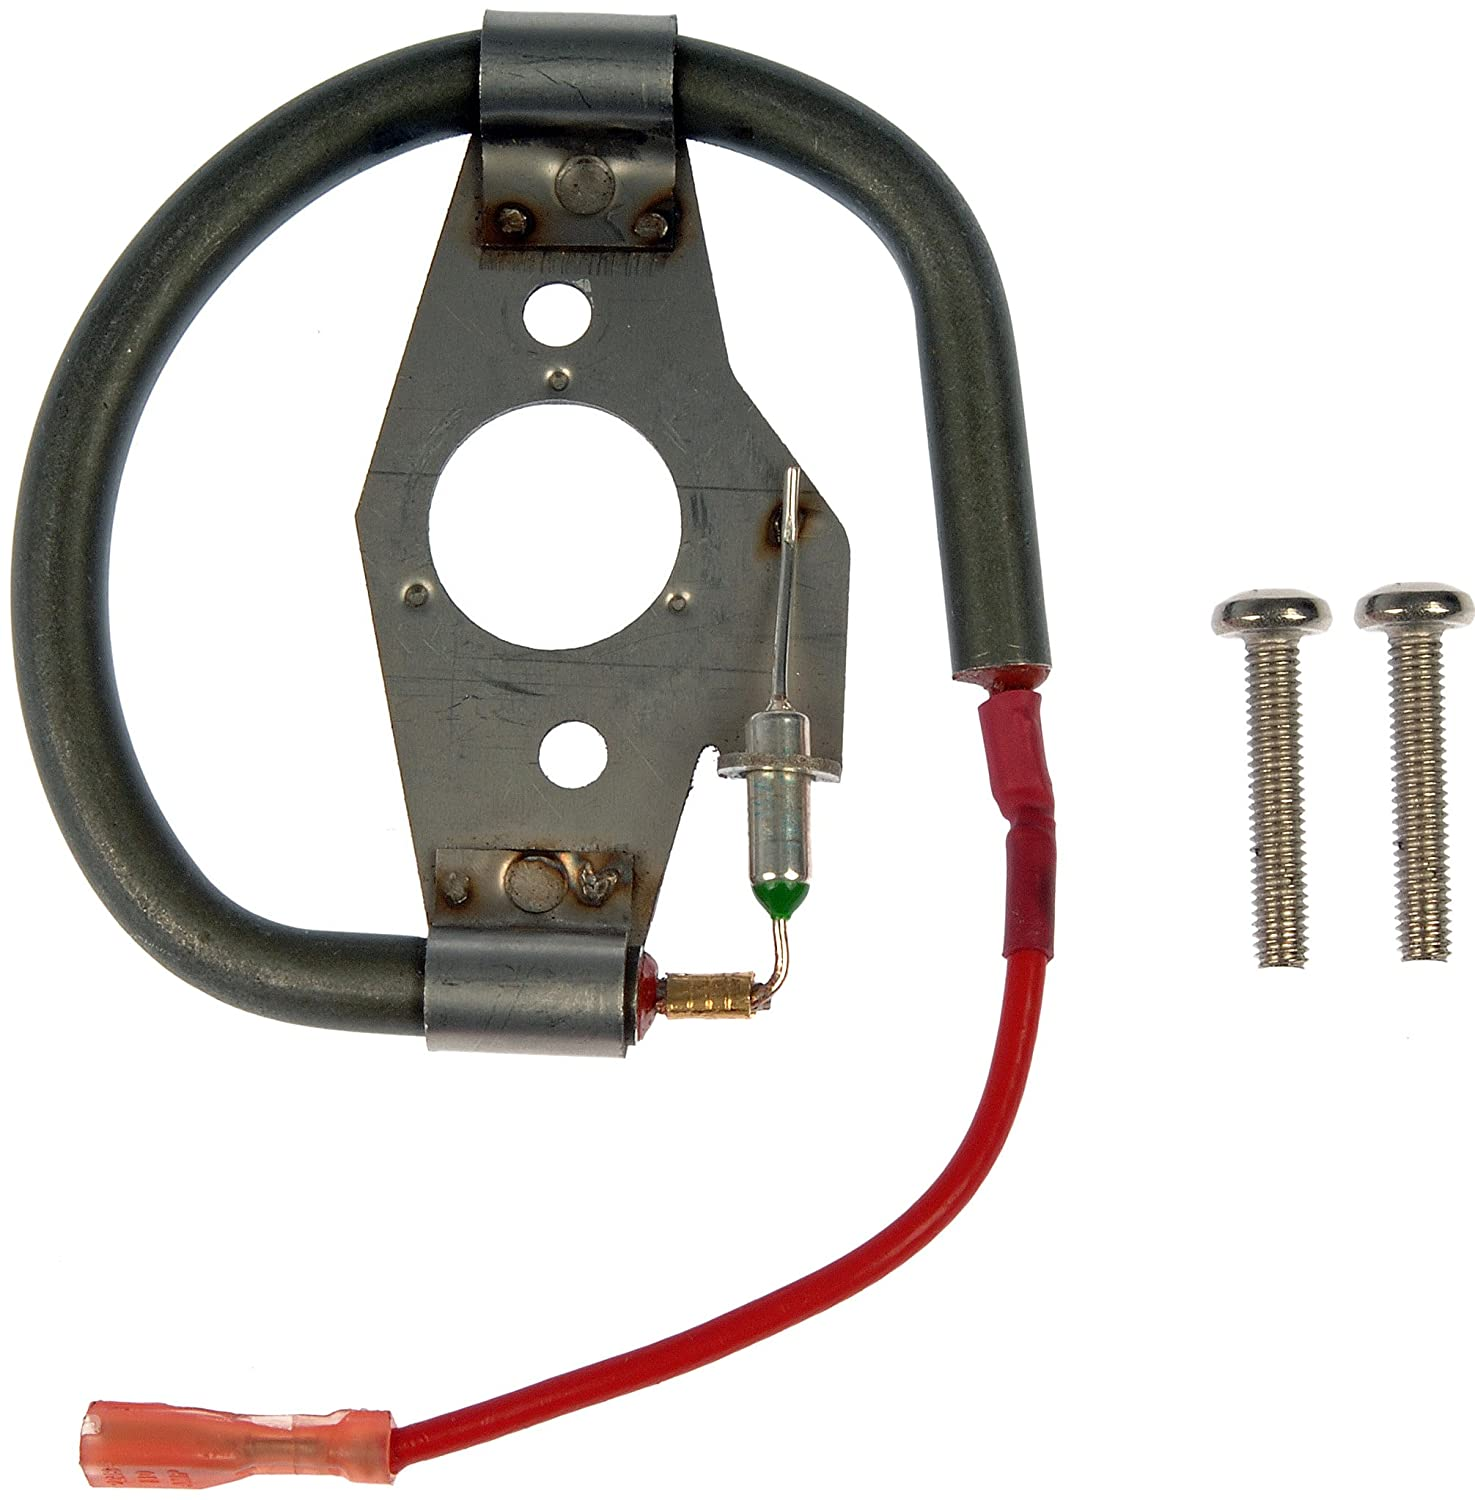 Dorman 904-210 Diesel Fuel Heating Element